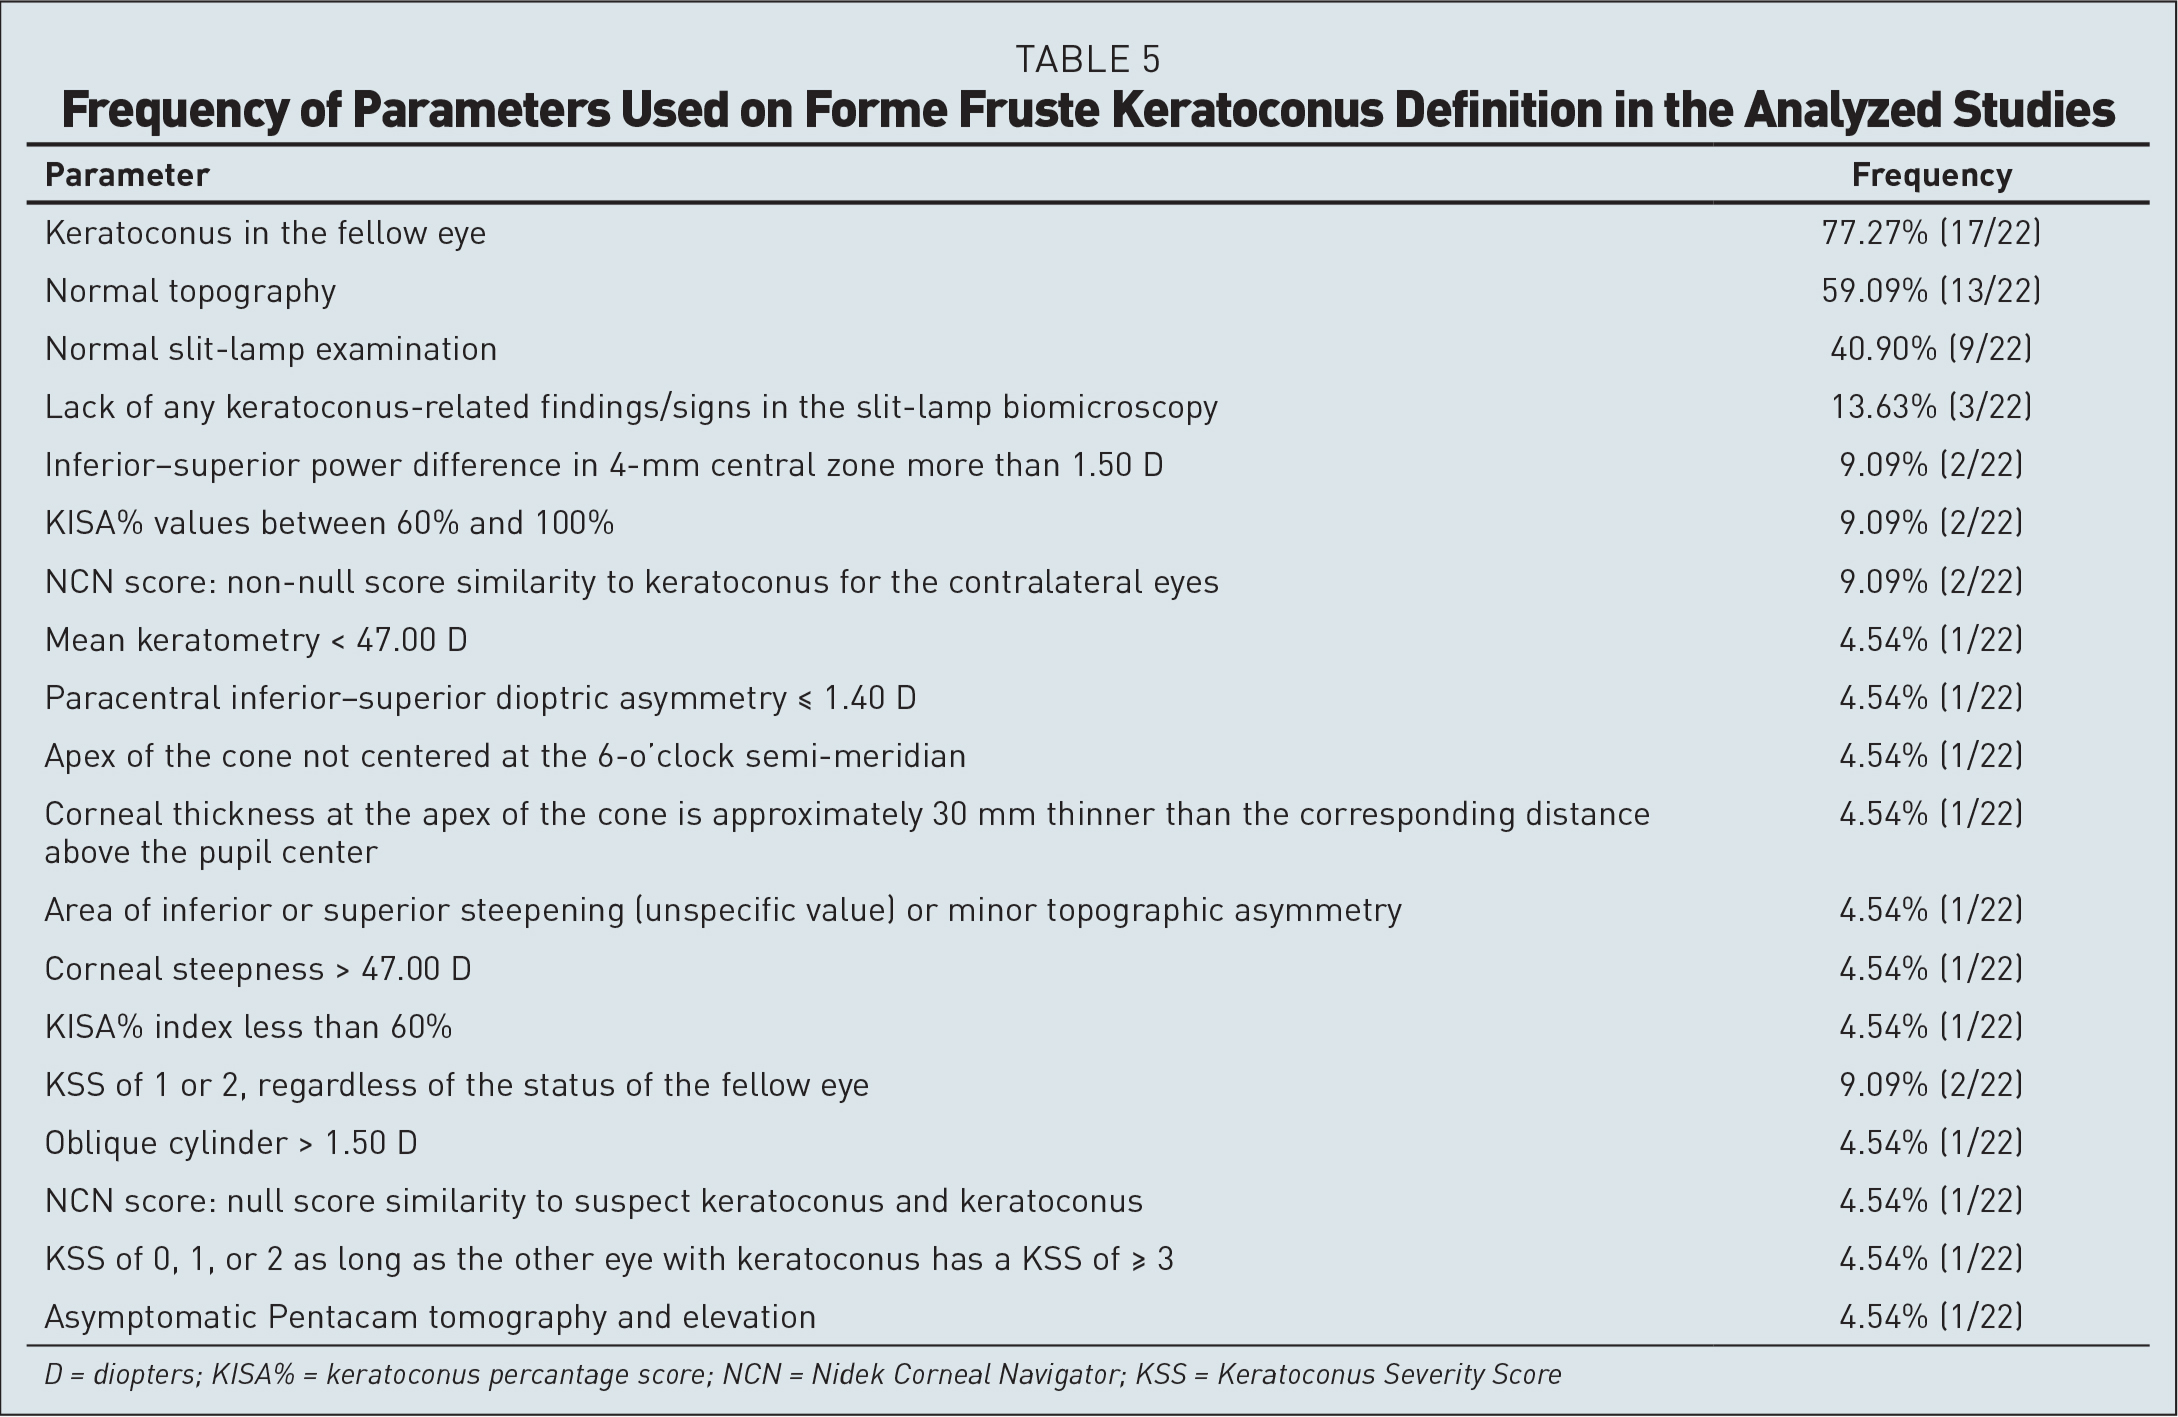 Frequency of Parameters Used on Forme Fruste Keratoconus Definition in the Analyzed Studies